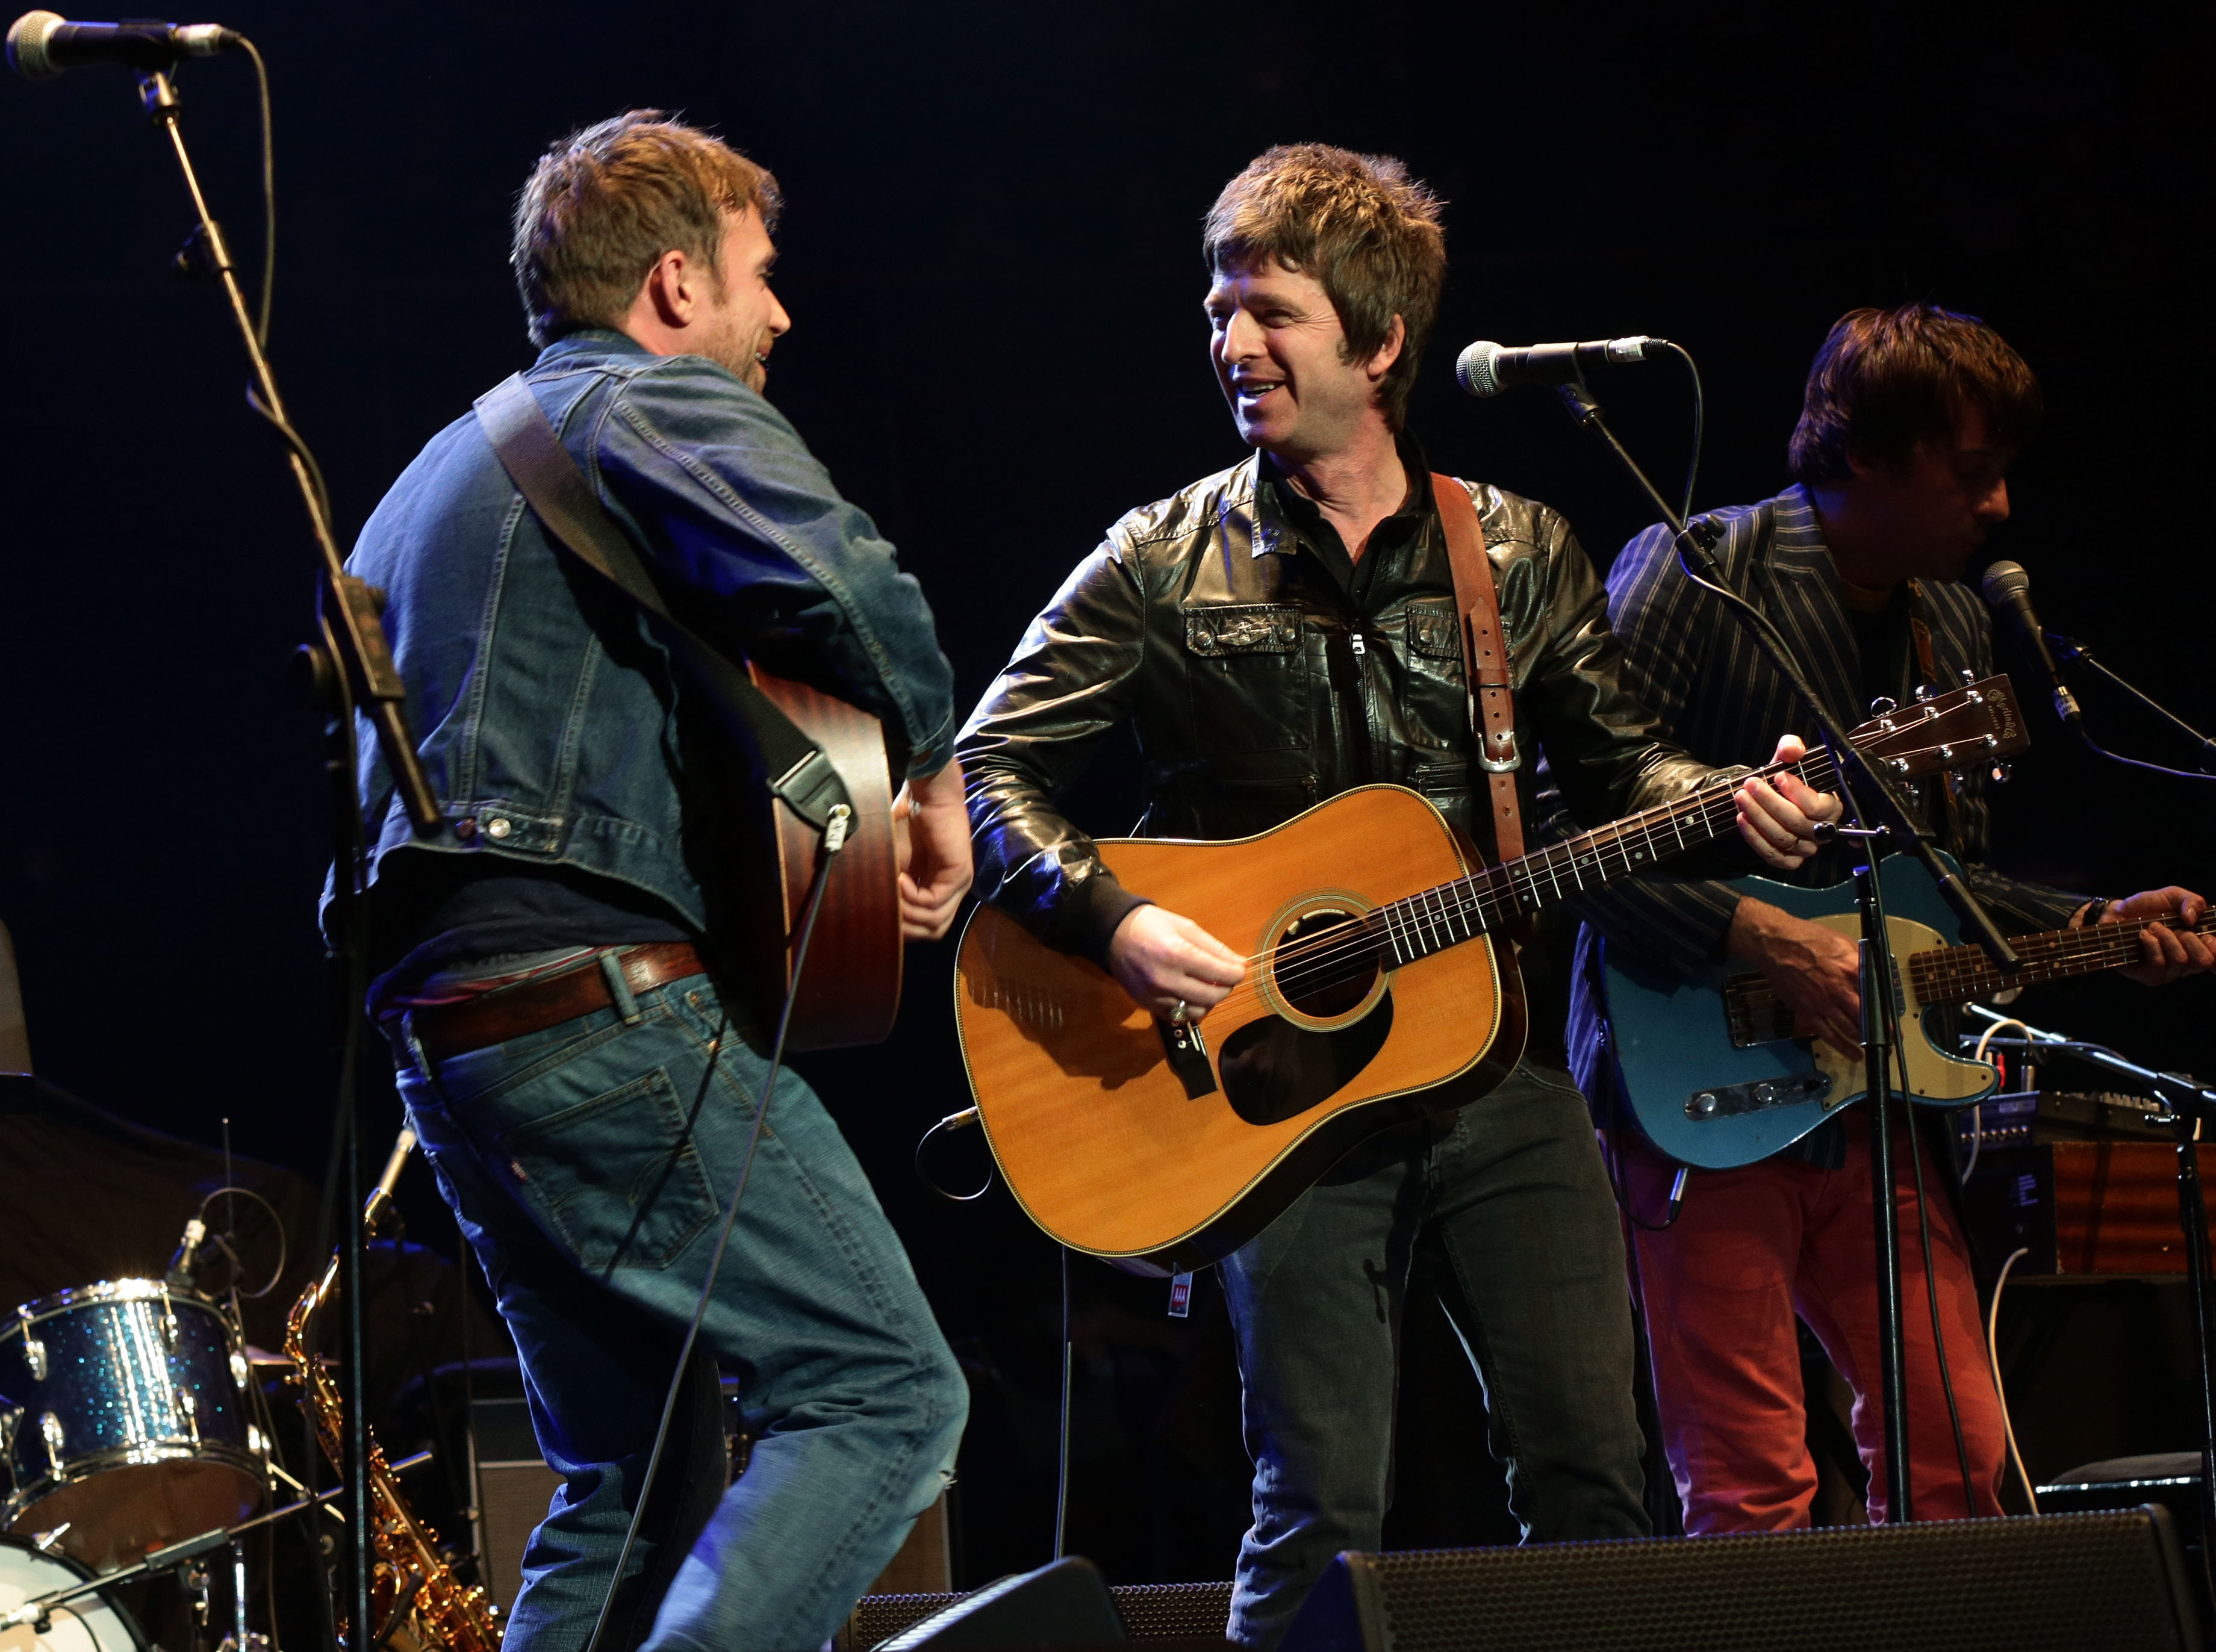 Former chart rivals Damon Albarn and Noel Gallagher on stage together at the Royal Albert Hall during last year's Teenage Cancer Trust gigs (Picture: PA)